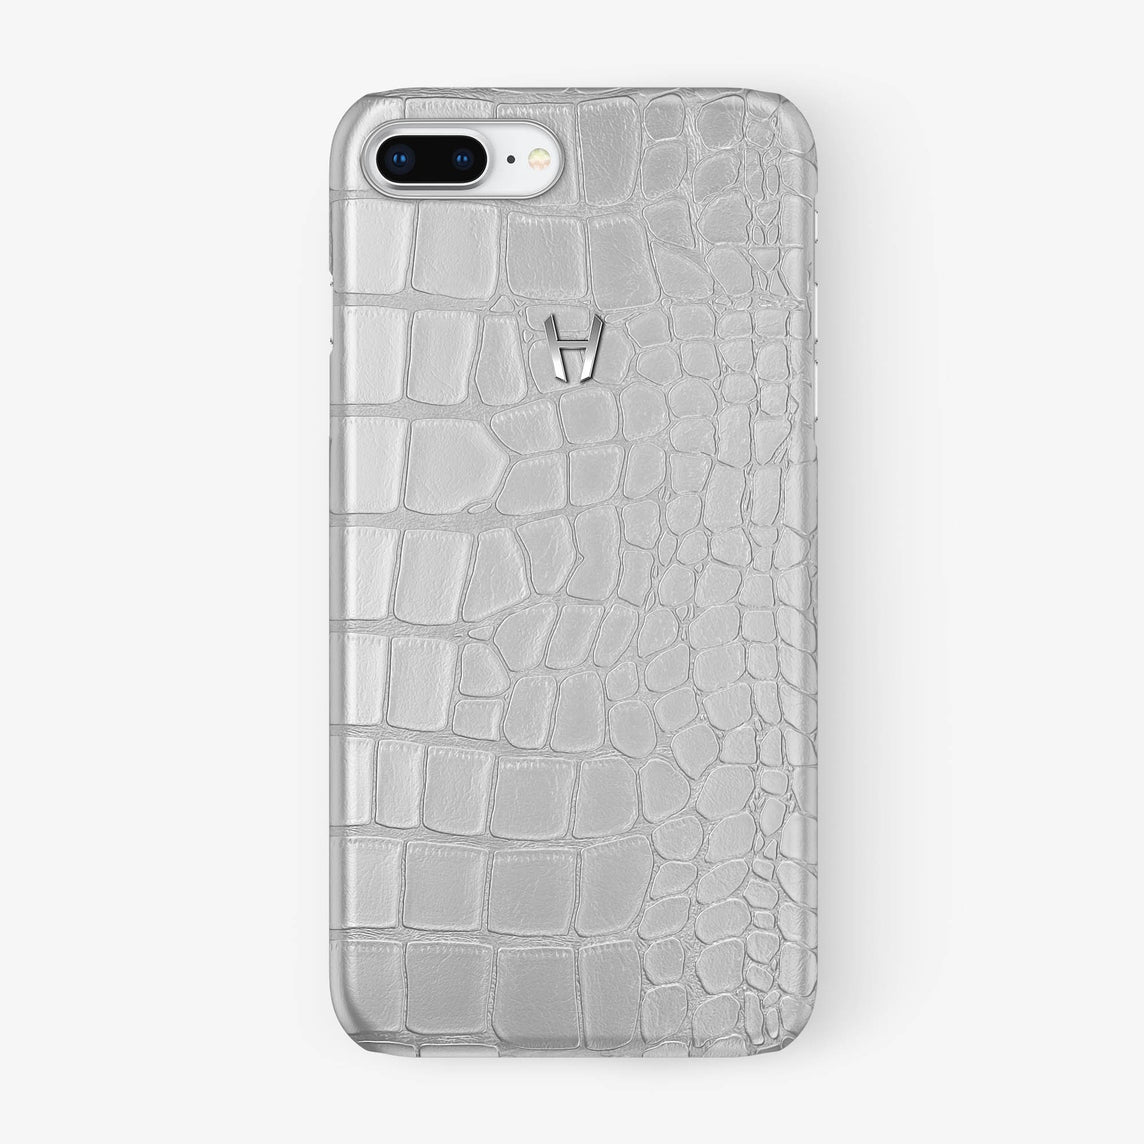 Alligator Case iPhone 7/8 Plus | White - Stainless Steel - Hadoro